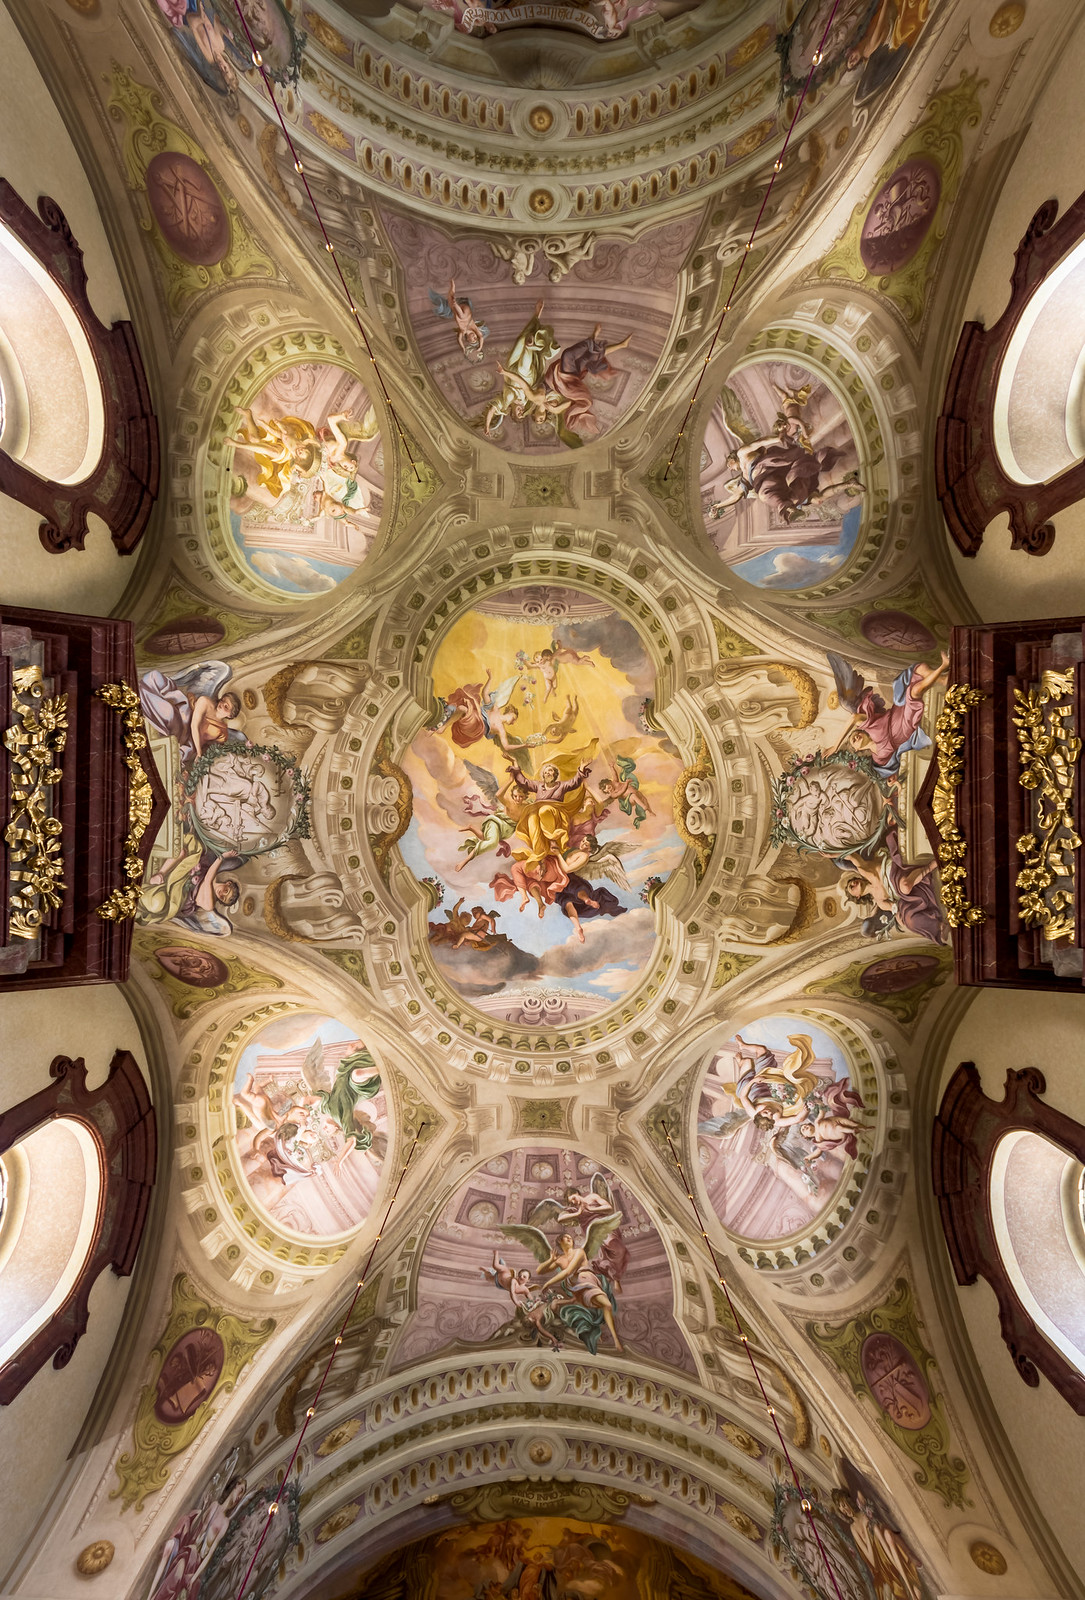 Ceiling fresco in the nave of Maria Taferl Basilica (Lower Austria) by Antonio Beduzzi (1714-1718) Glorification of St. Joseph, Credit Uoaei1